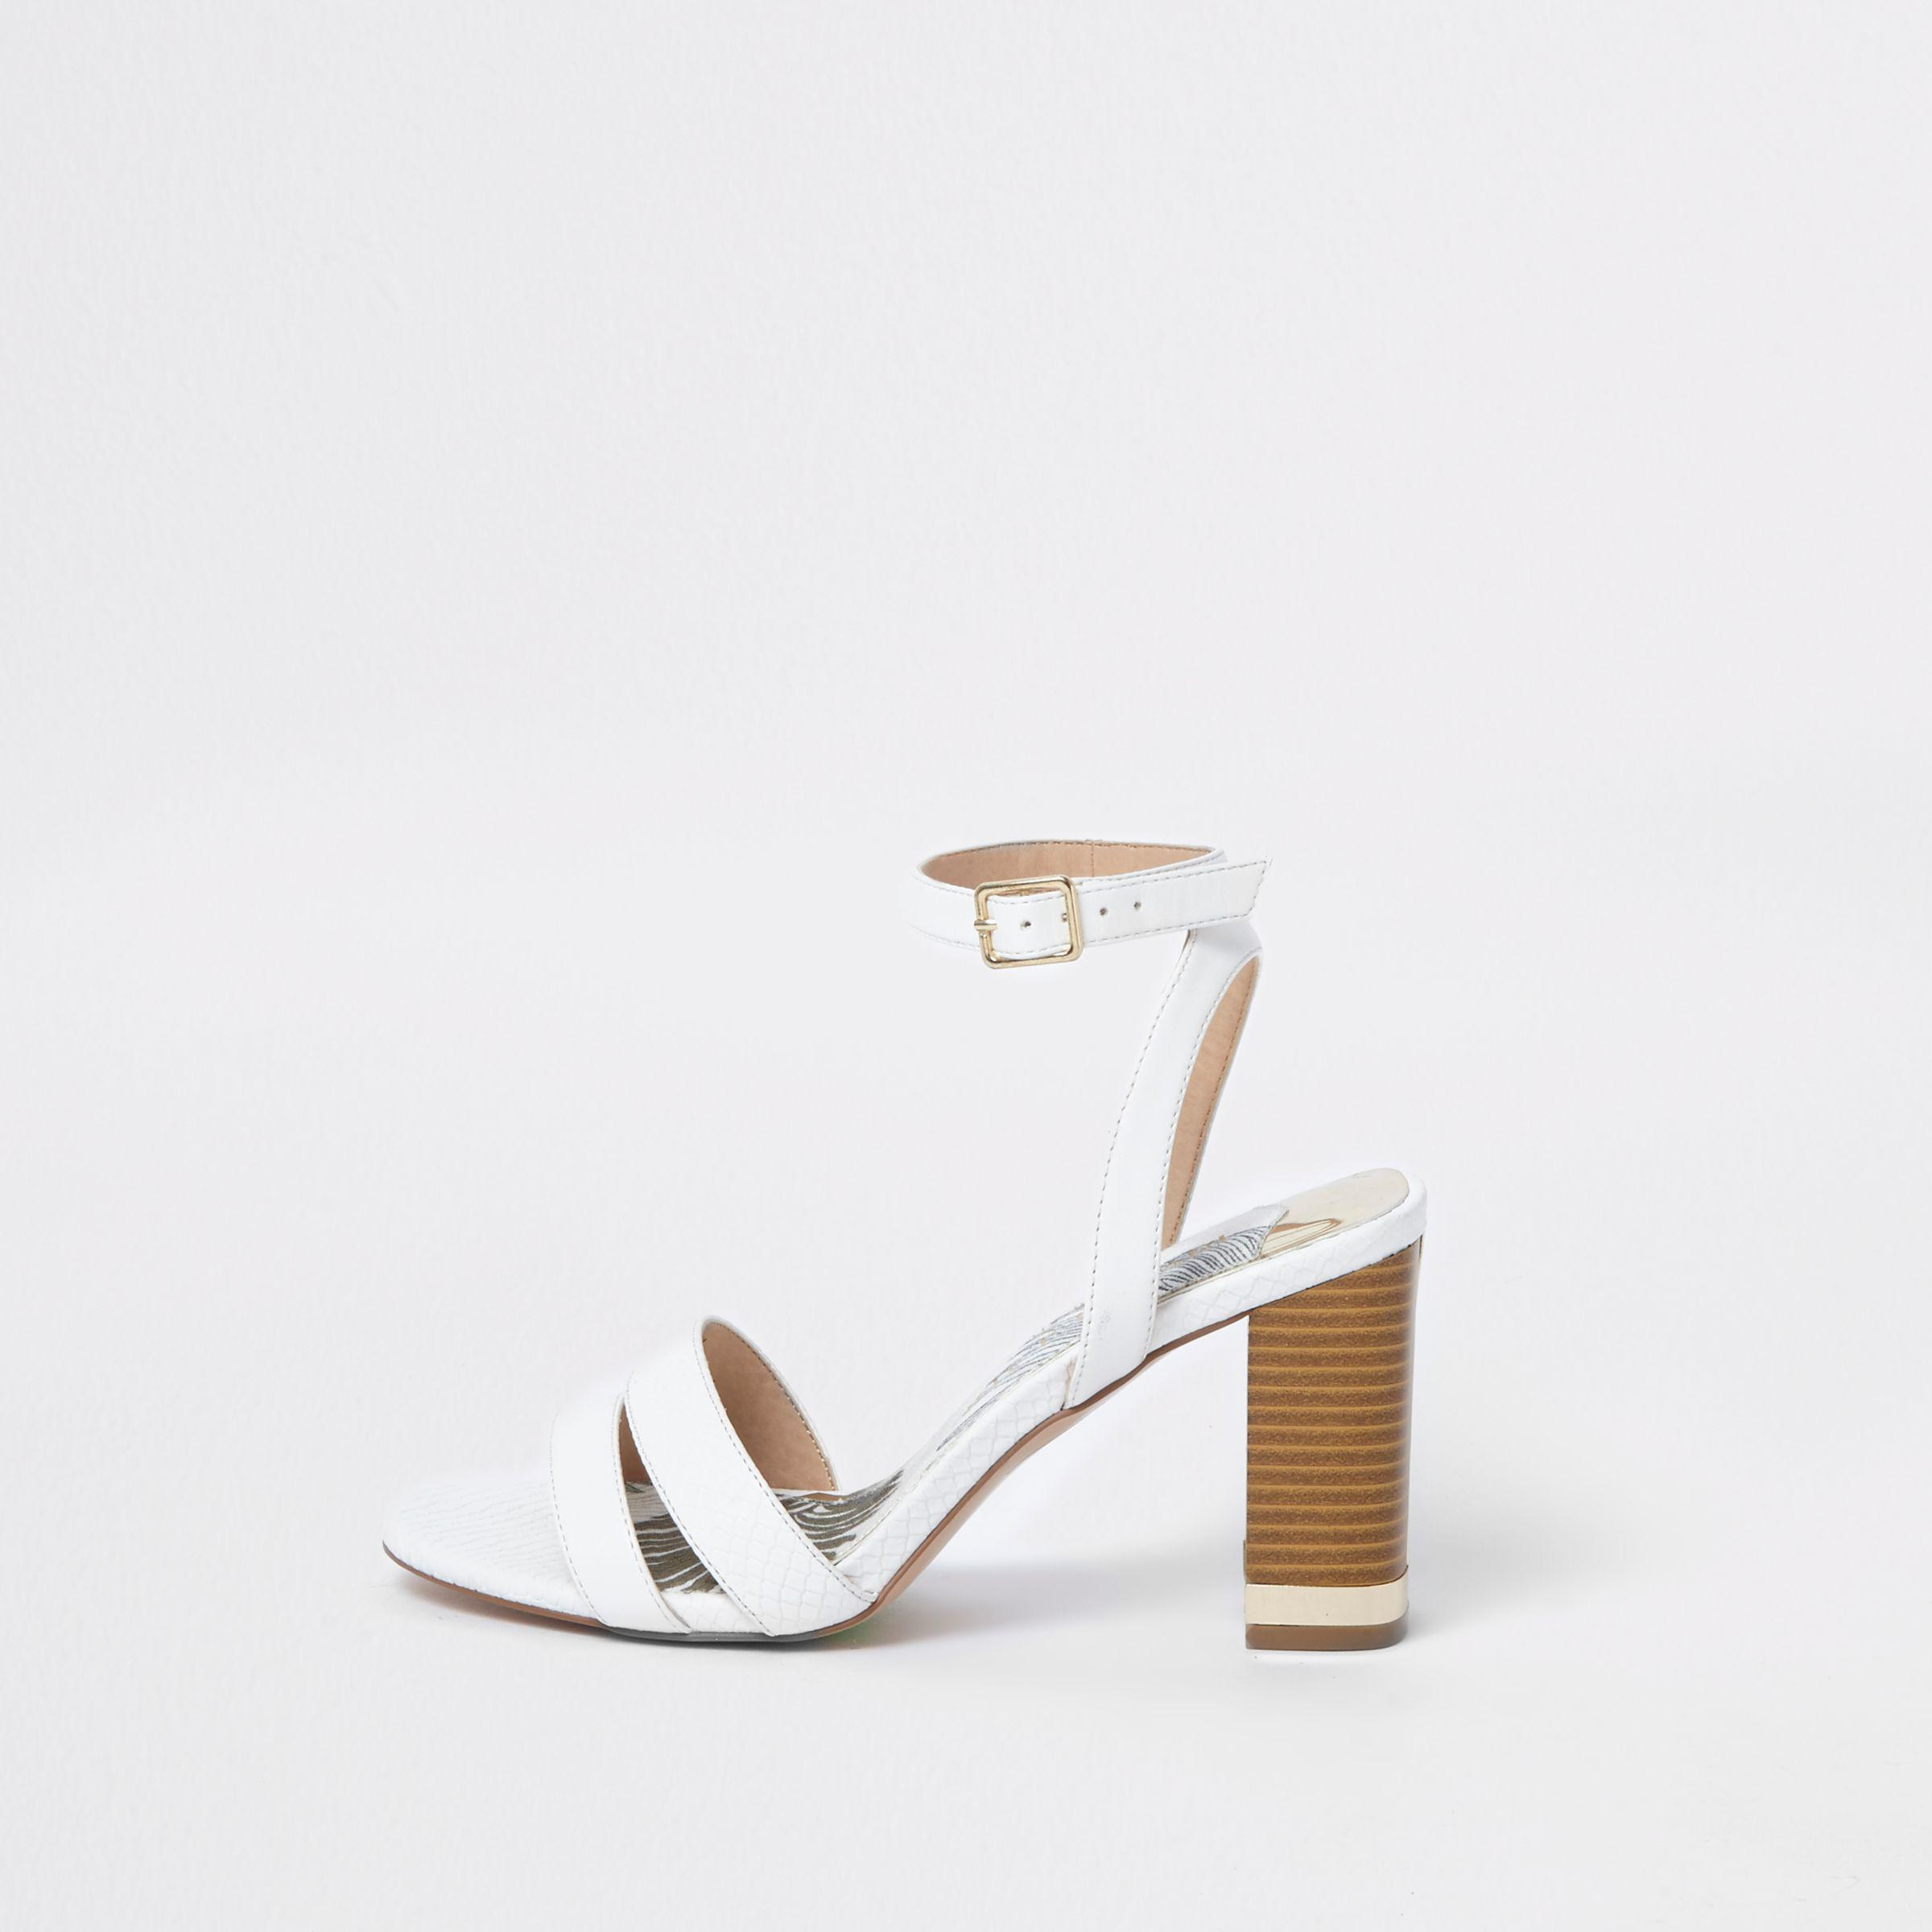 8511cc7b9c1 Lyst - River Island Wide Fit Croc Block Heel Sandals in White